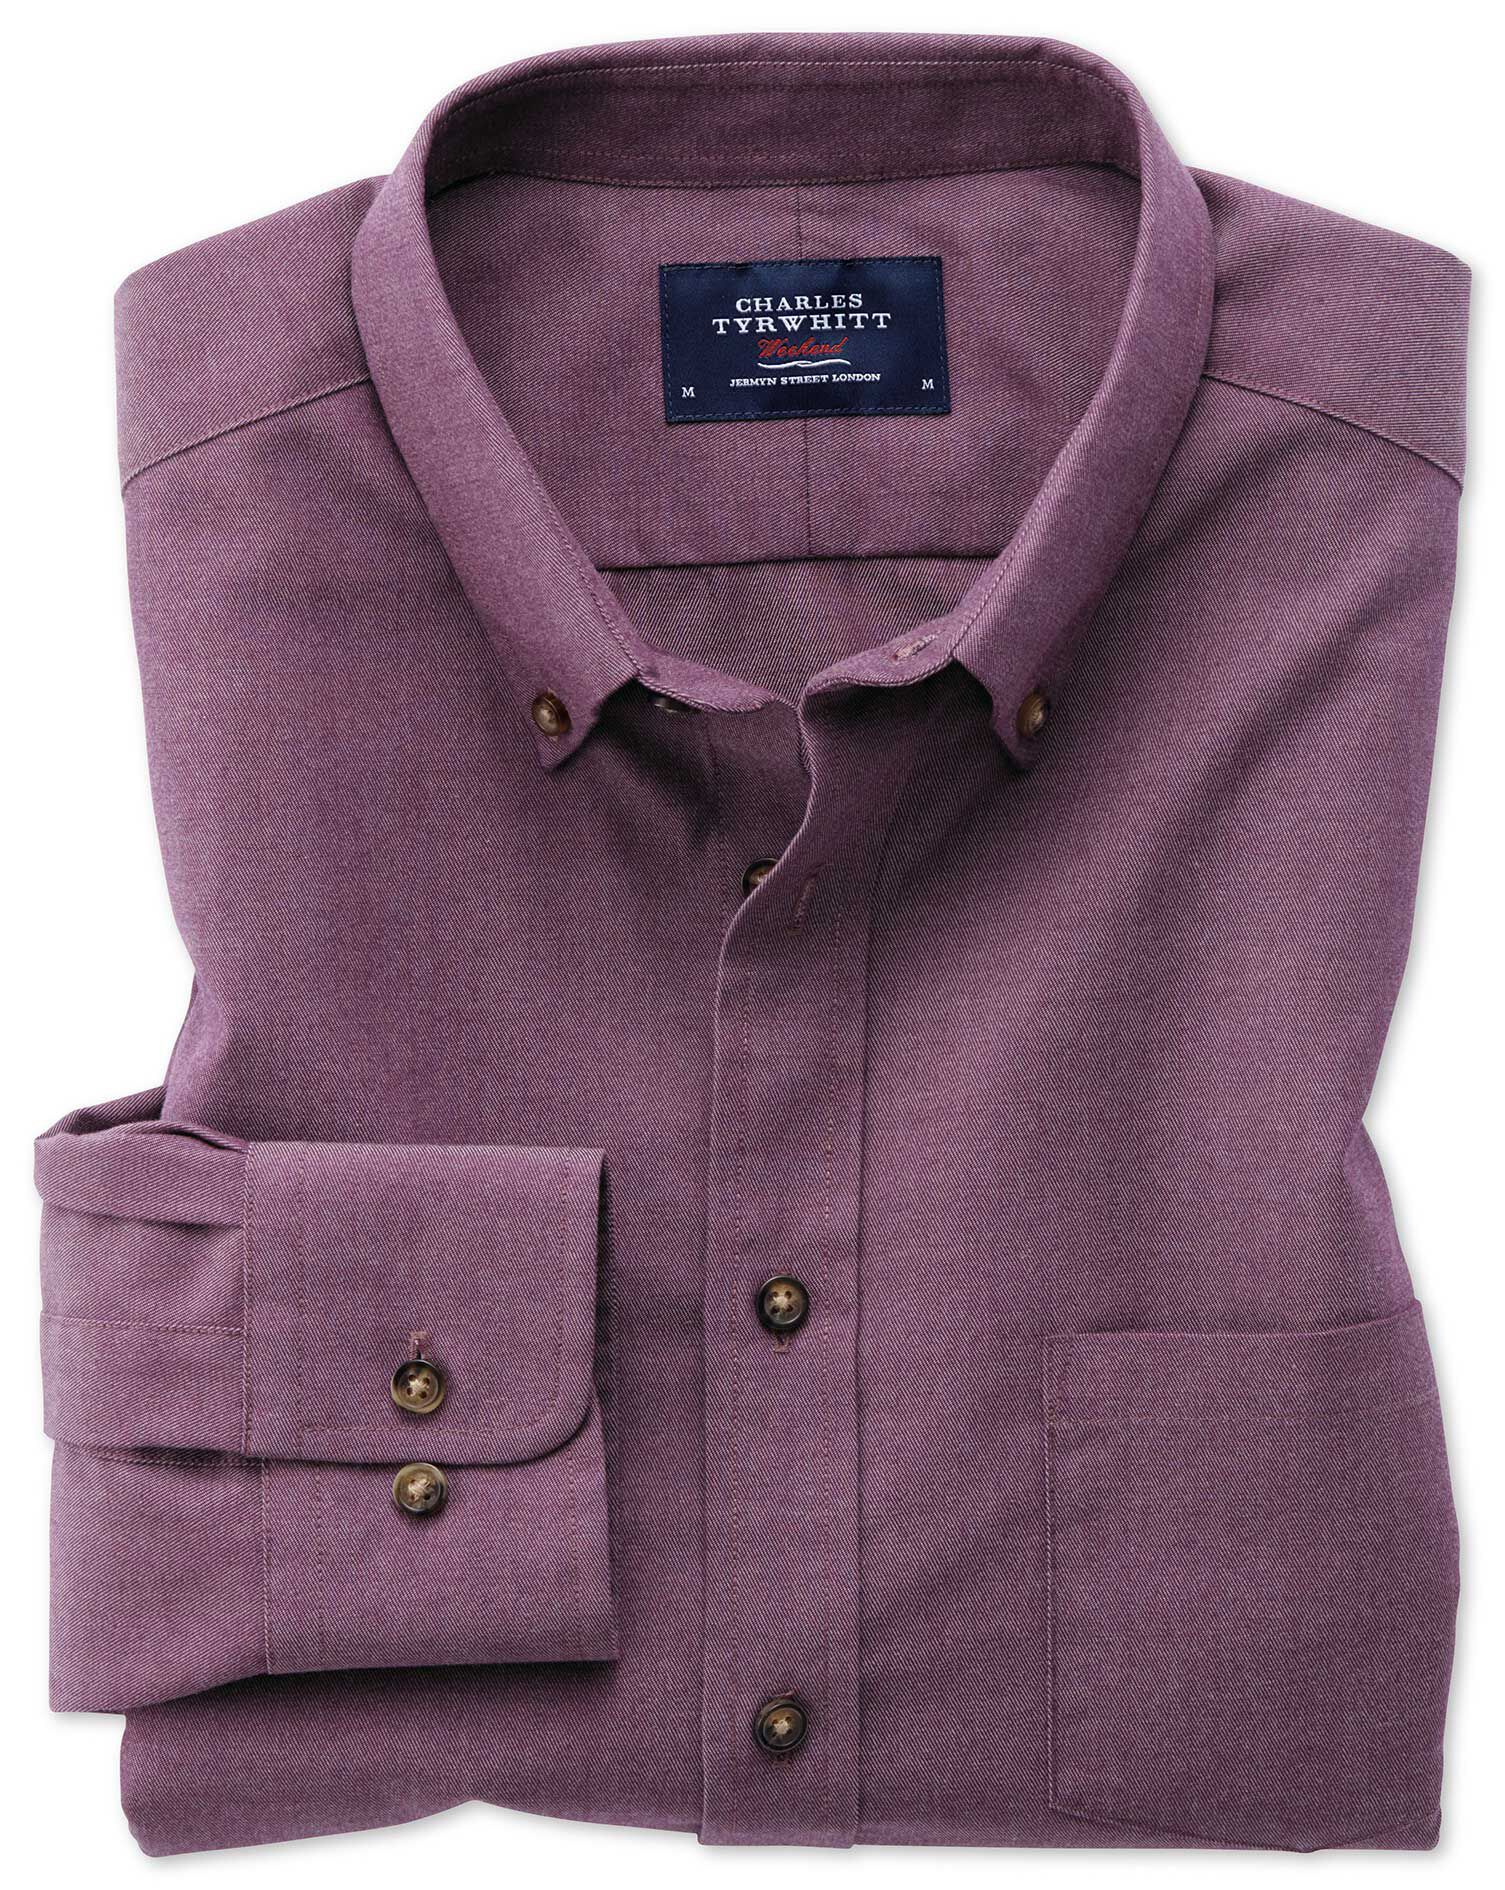 Classic Fit Button-Down Non-Iron Twill Purple Cotton Shirt Single Cuff Size XXXL by Charles Tyrwhitt